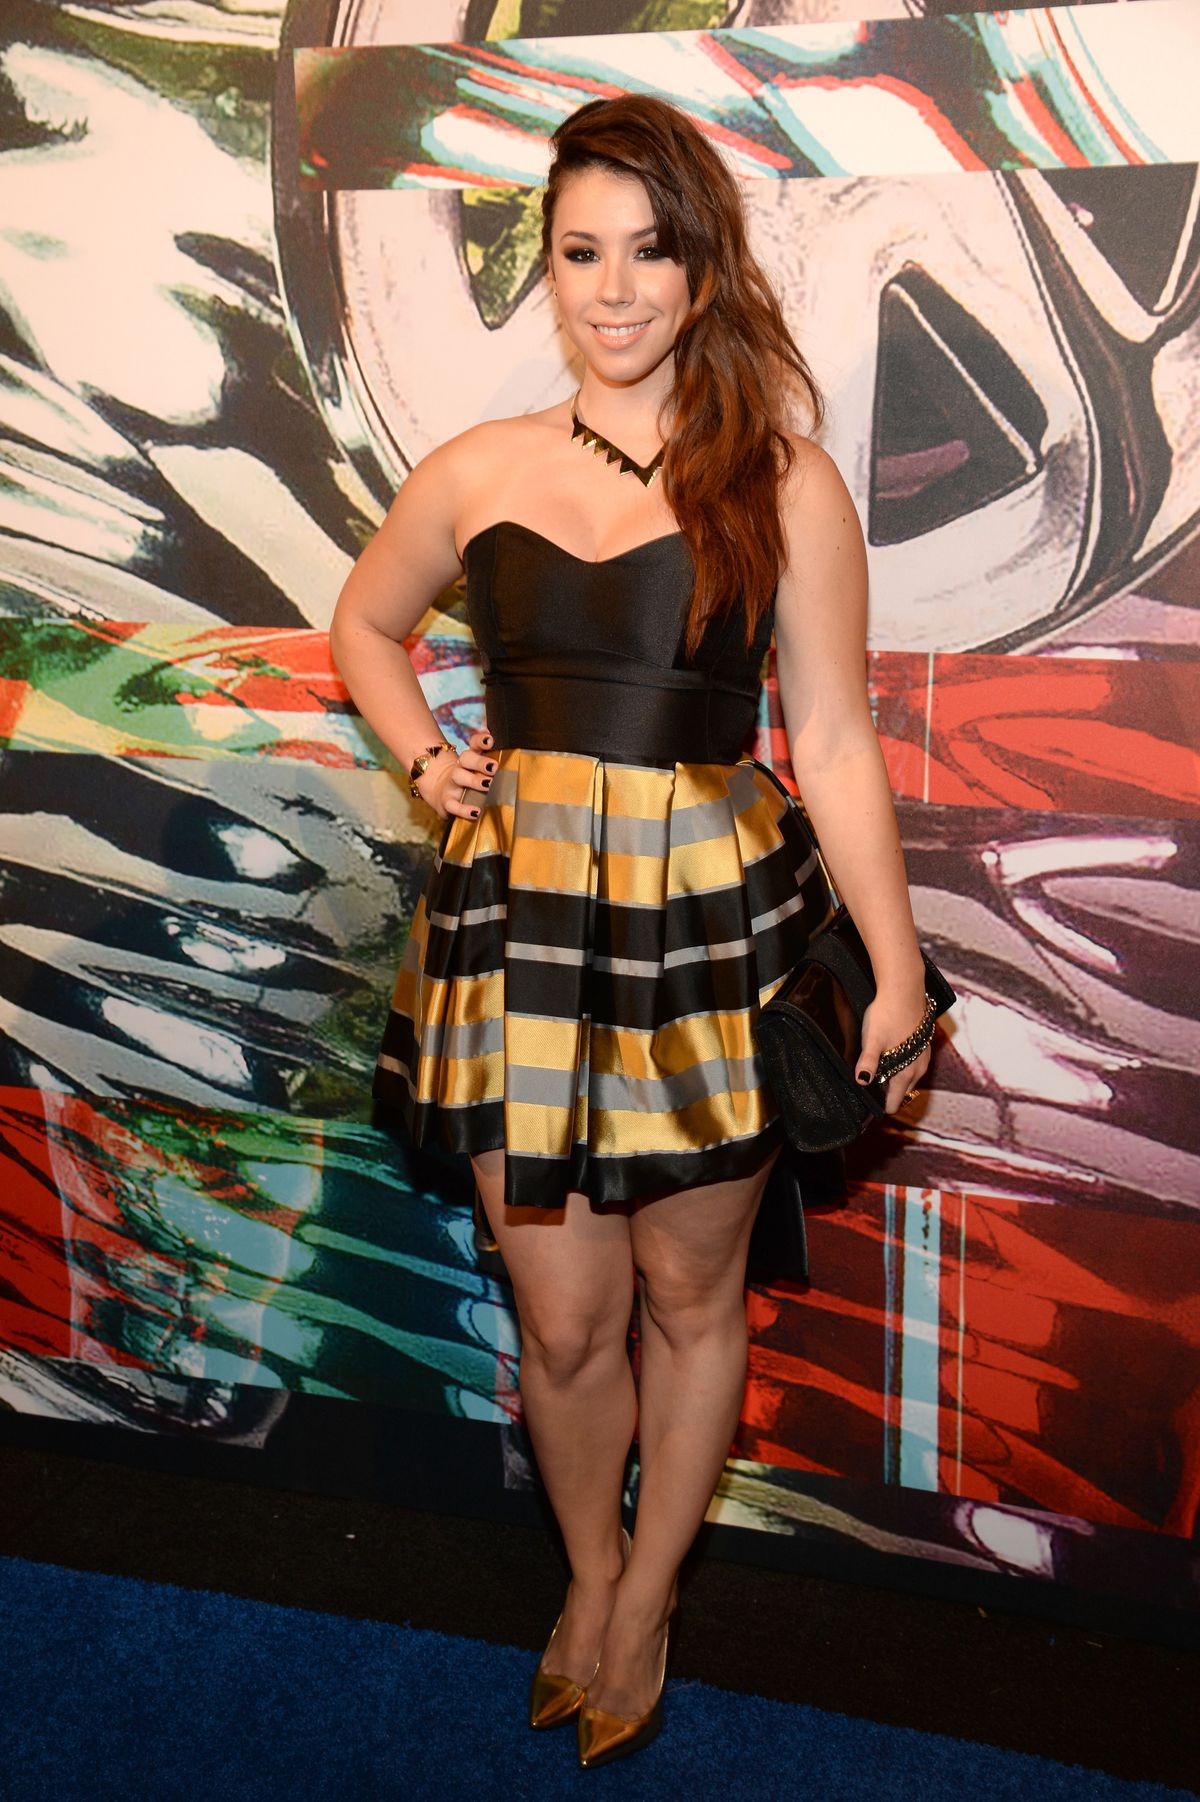 LOS ANGELES, CA - AUGUST 30: Jillian Rose Reed attends the 2015 MTV Video Music Awards at Microsoft Theater on August 30, 2015 in Los Angeles, California. (Photo by Kevin Mazur/WireImage)